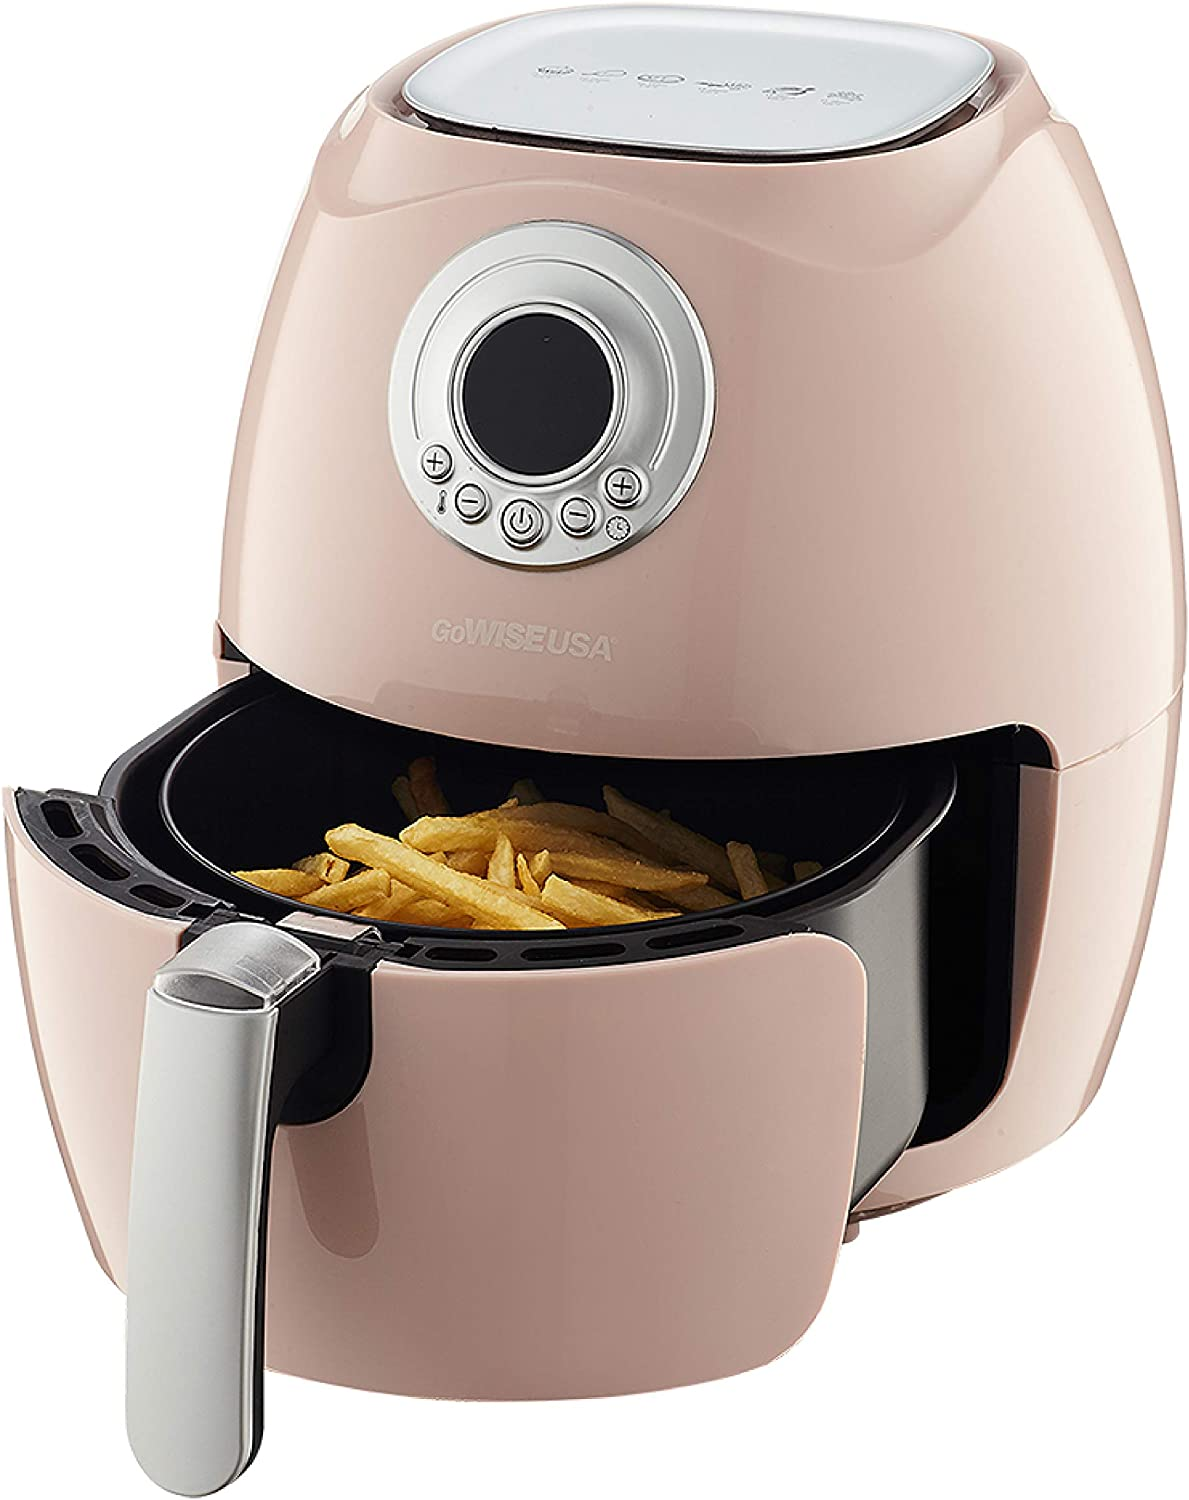 Gifts for Moms: Air Fryer